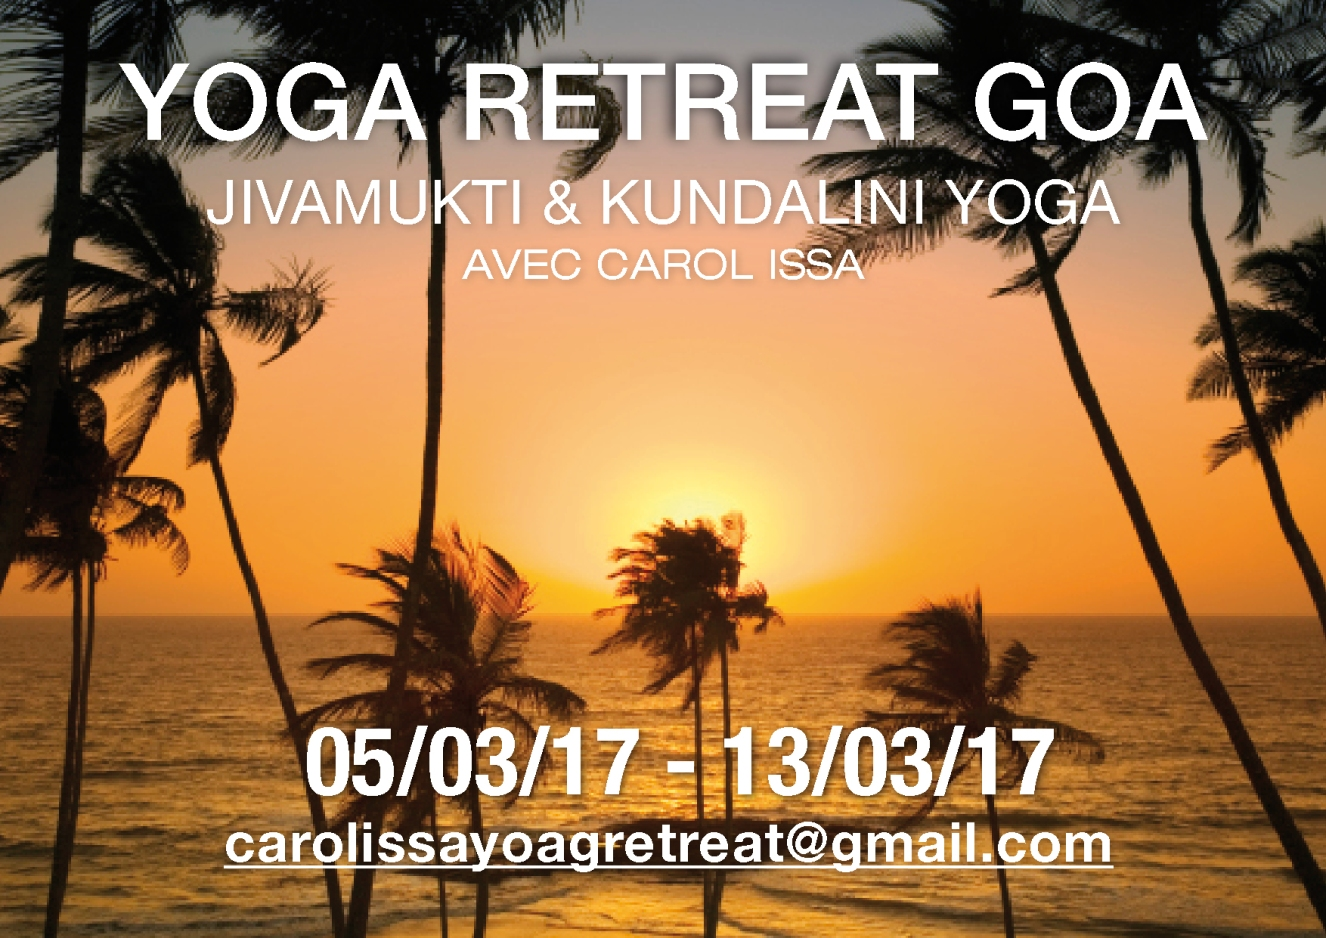 goa_yogaretreat_2017_CAROLISSA.jpg